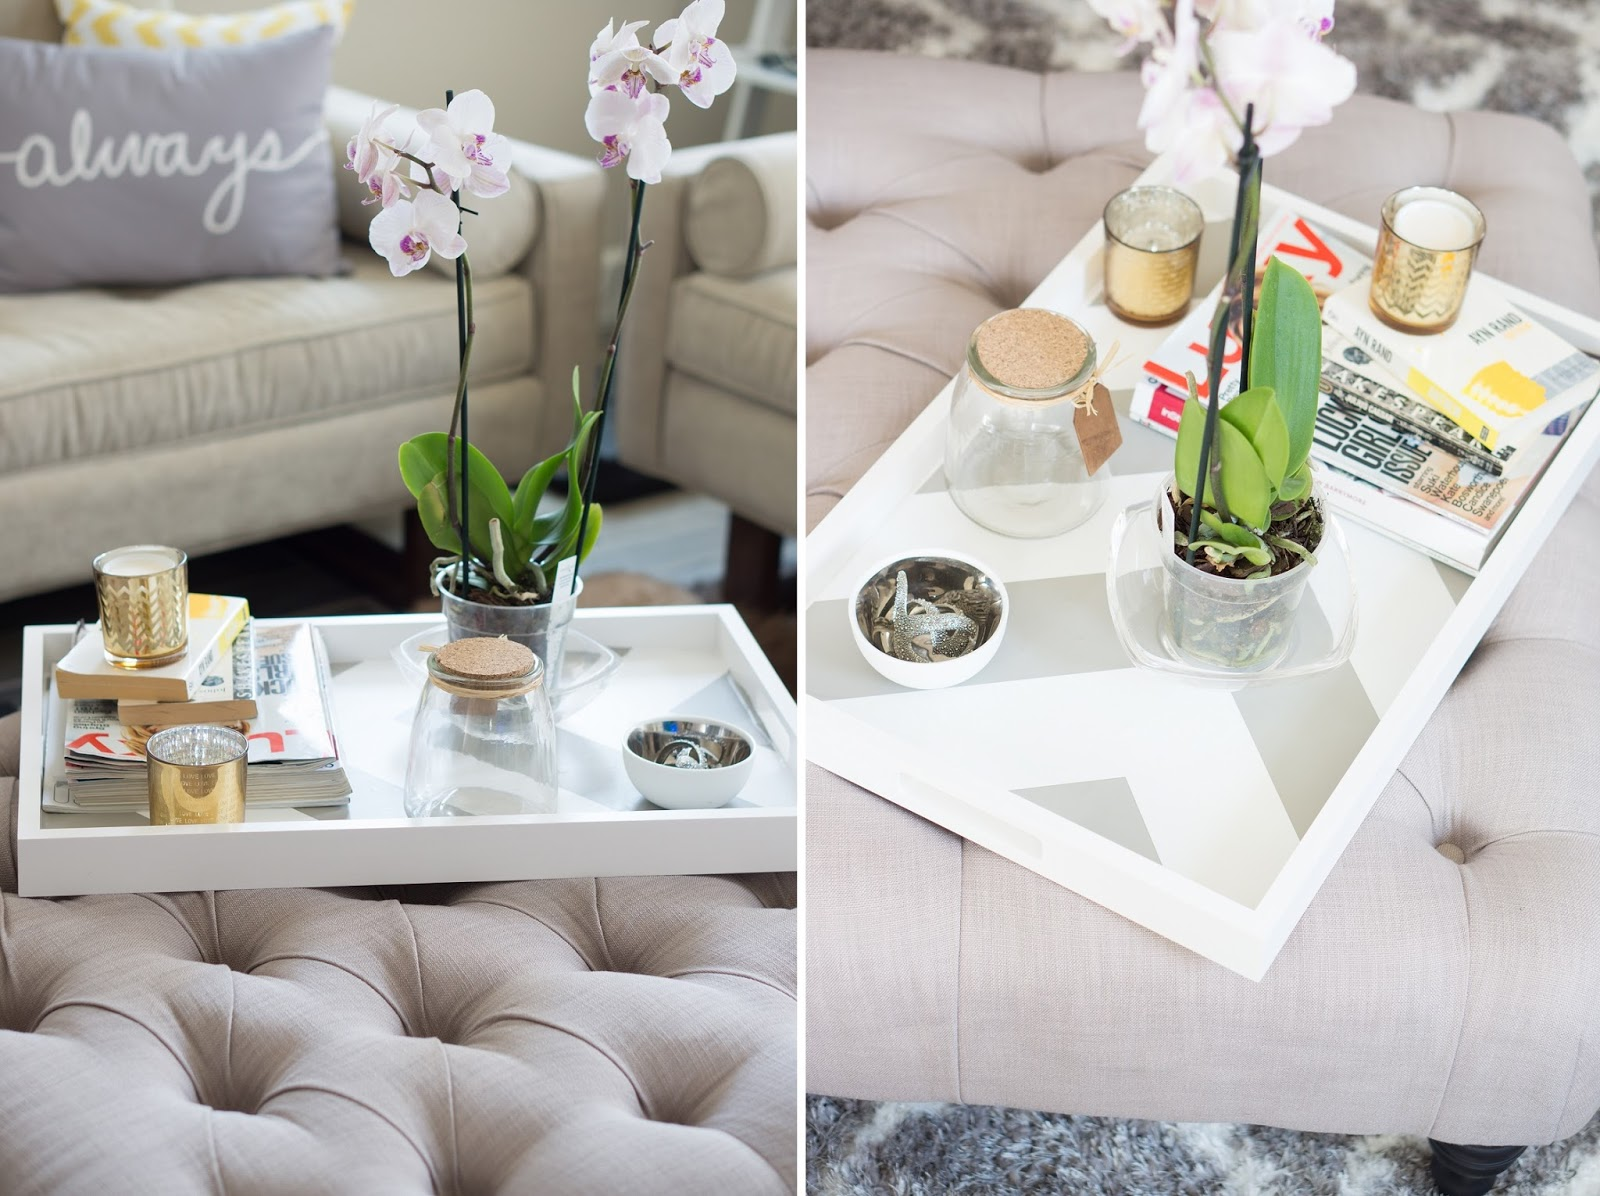 Inspiring Style DIY Coffee Table Tray Oh to Be a Muse